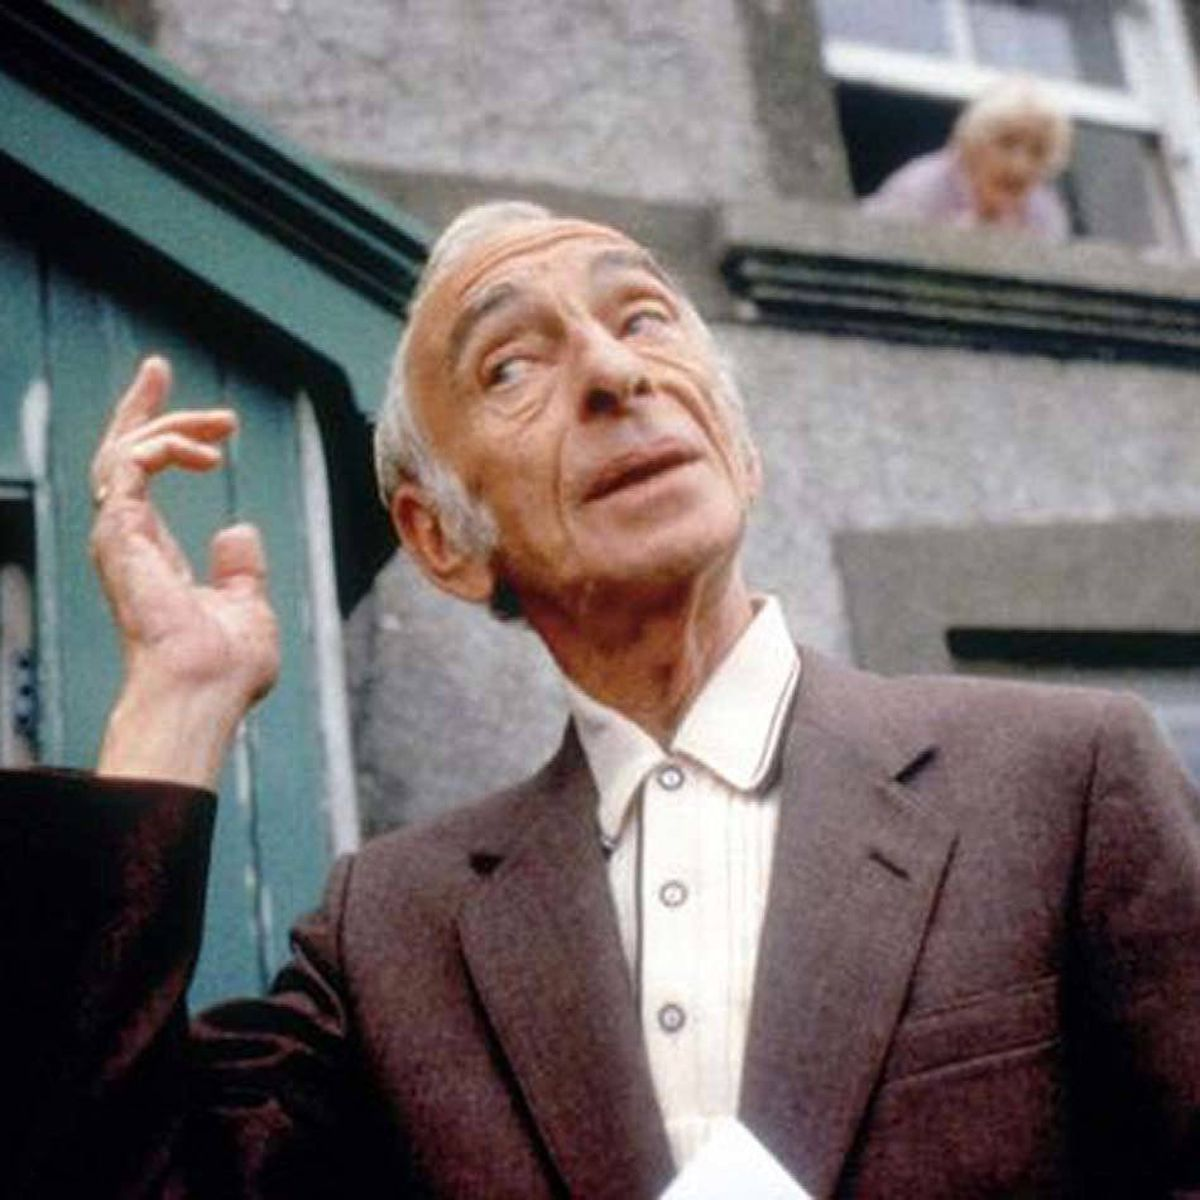 MOVIE Waking Ned Devine Vision, midnight ET; 9 p.m. PT 'Tis a great day for the Irish in this rousing British comedy. The 1998 film stars the late, great Ian Bannen as the cunning Jackie O'Shea, who is tickled to discover that someone in the town of Tulaigh Morh has won the massive jackpot in the national Irish Lottery. In short order, he travels to the tiny town with his wife Annie (Fionnula Flanagan) and best mate Michael (David Kelly) in tow. When they discover that the winner Ned Devine has dropped dead from shock, the unholy trio set about an elaborate scam to claim his winnings.